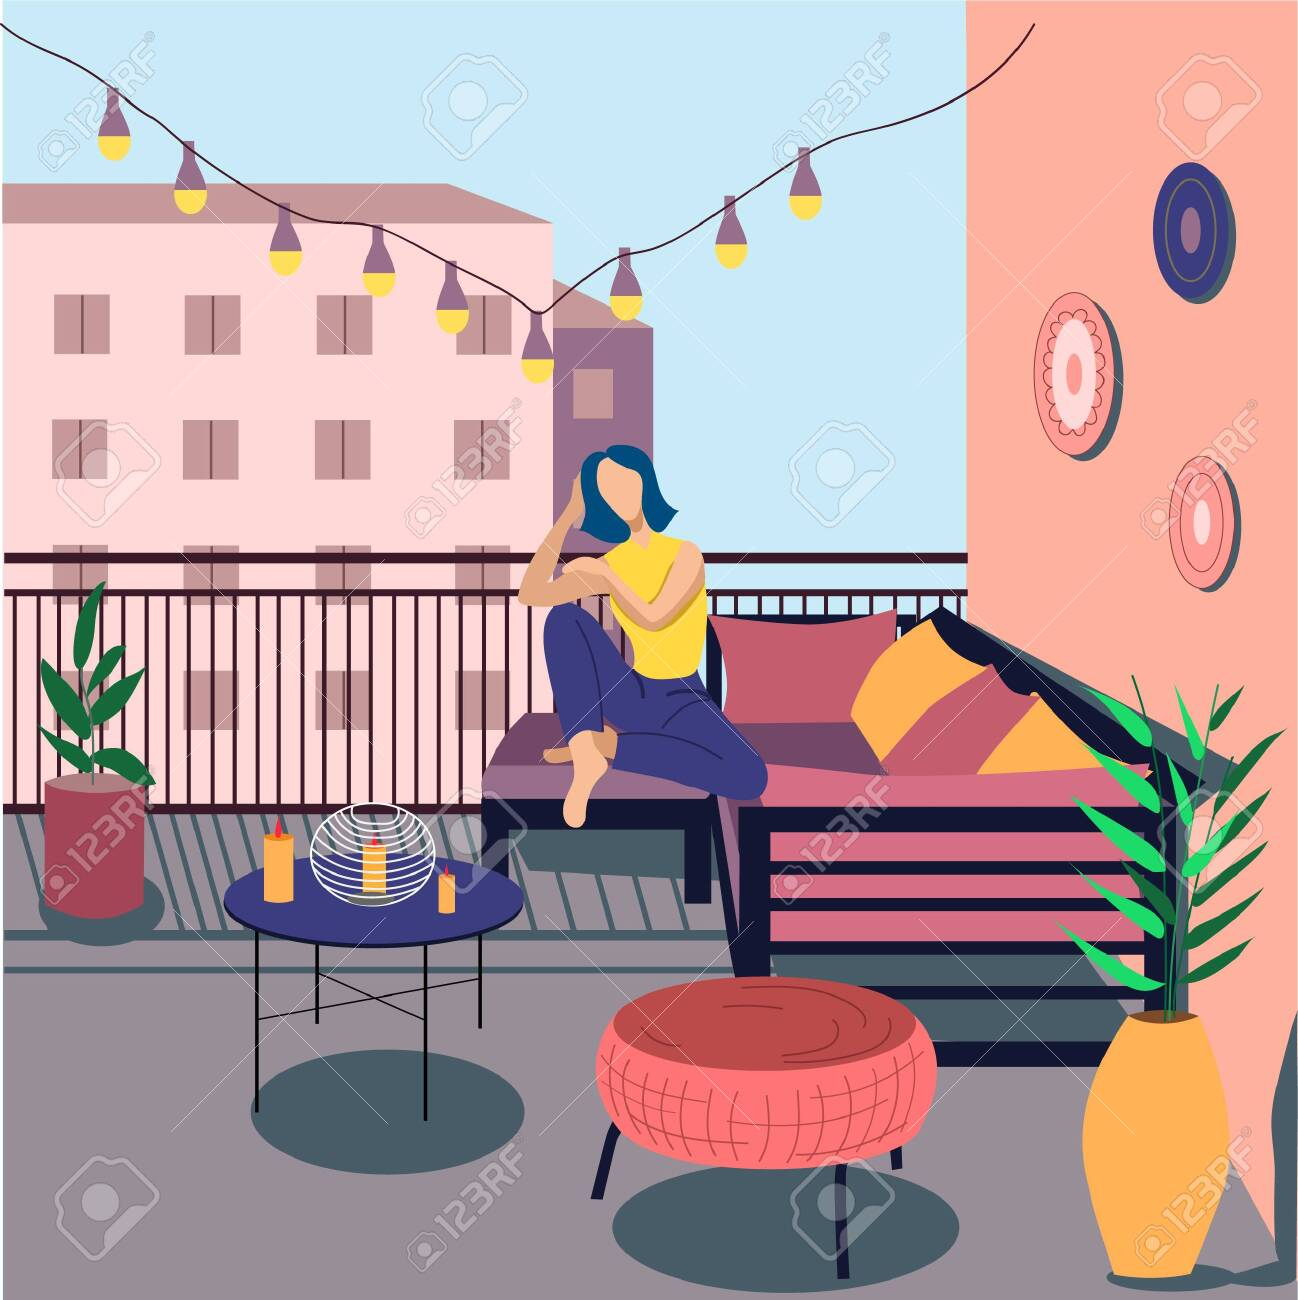 A Young Girl Is Bored At Home Home Furnishings Beautiful Interior The Girl Is Sitting On The Balcony Flat Vector Illustration Lizenzfrei Nutzbare Vektorgrafiken Clip Arts Illustrationen Image 148441343